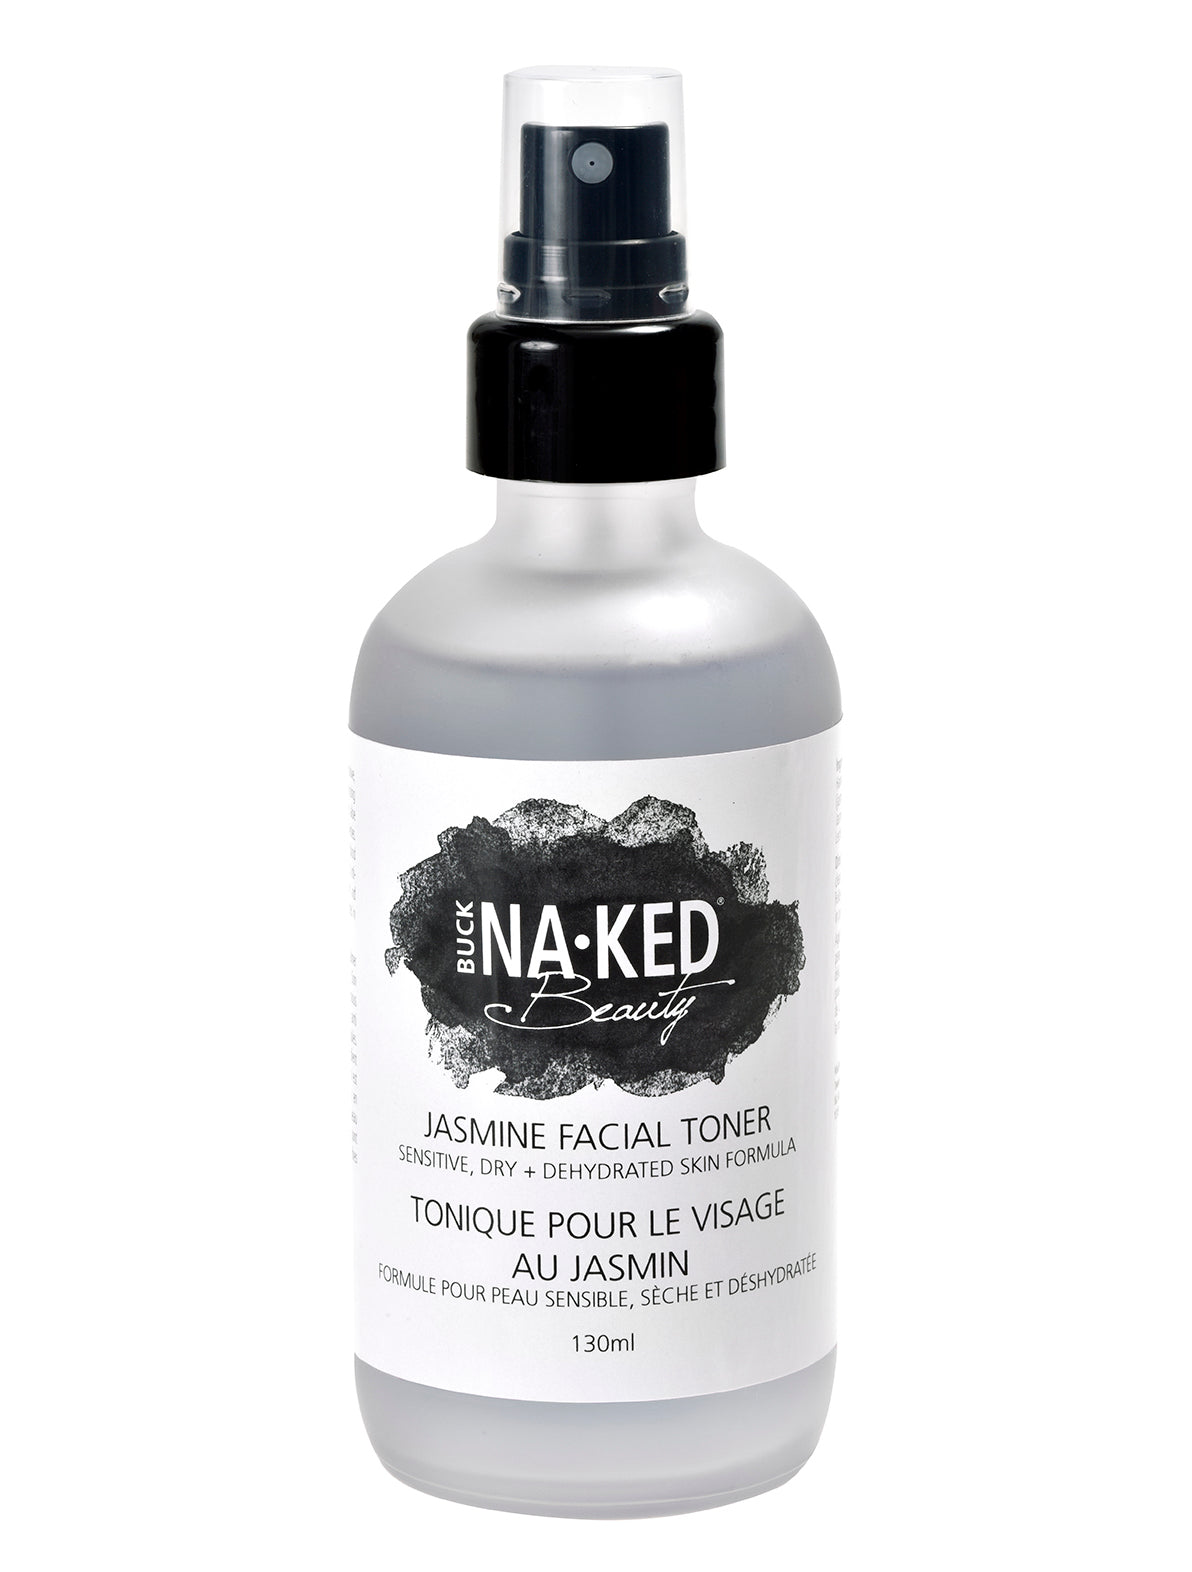 Jasmine Facial Toner: Sensitive, Dry + Dehydrated Skin Formula - Buck Naked Soap Company Inc